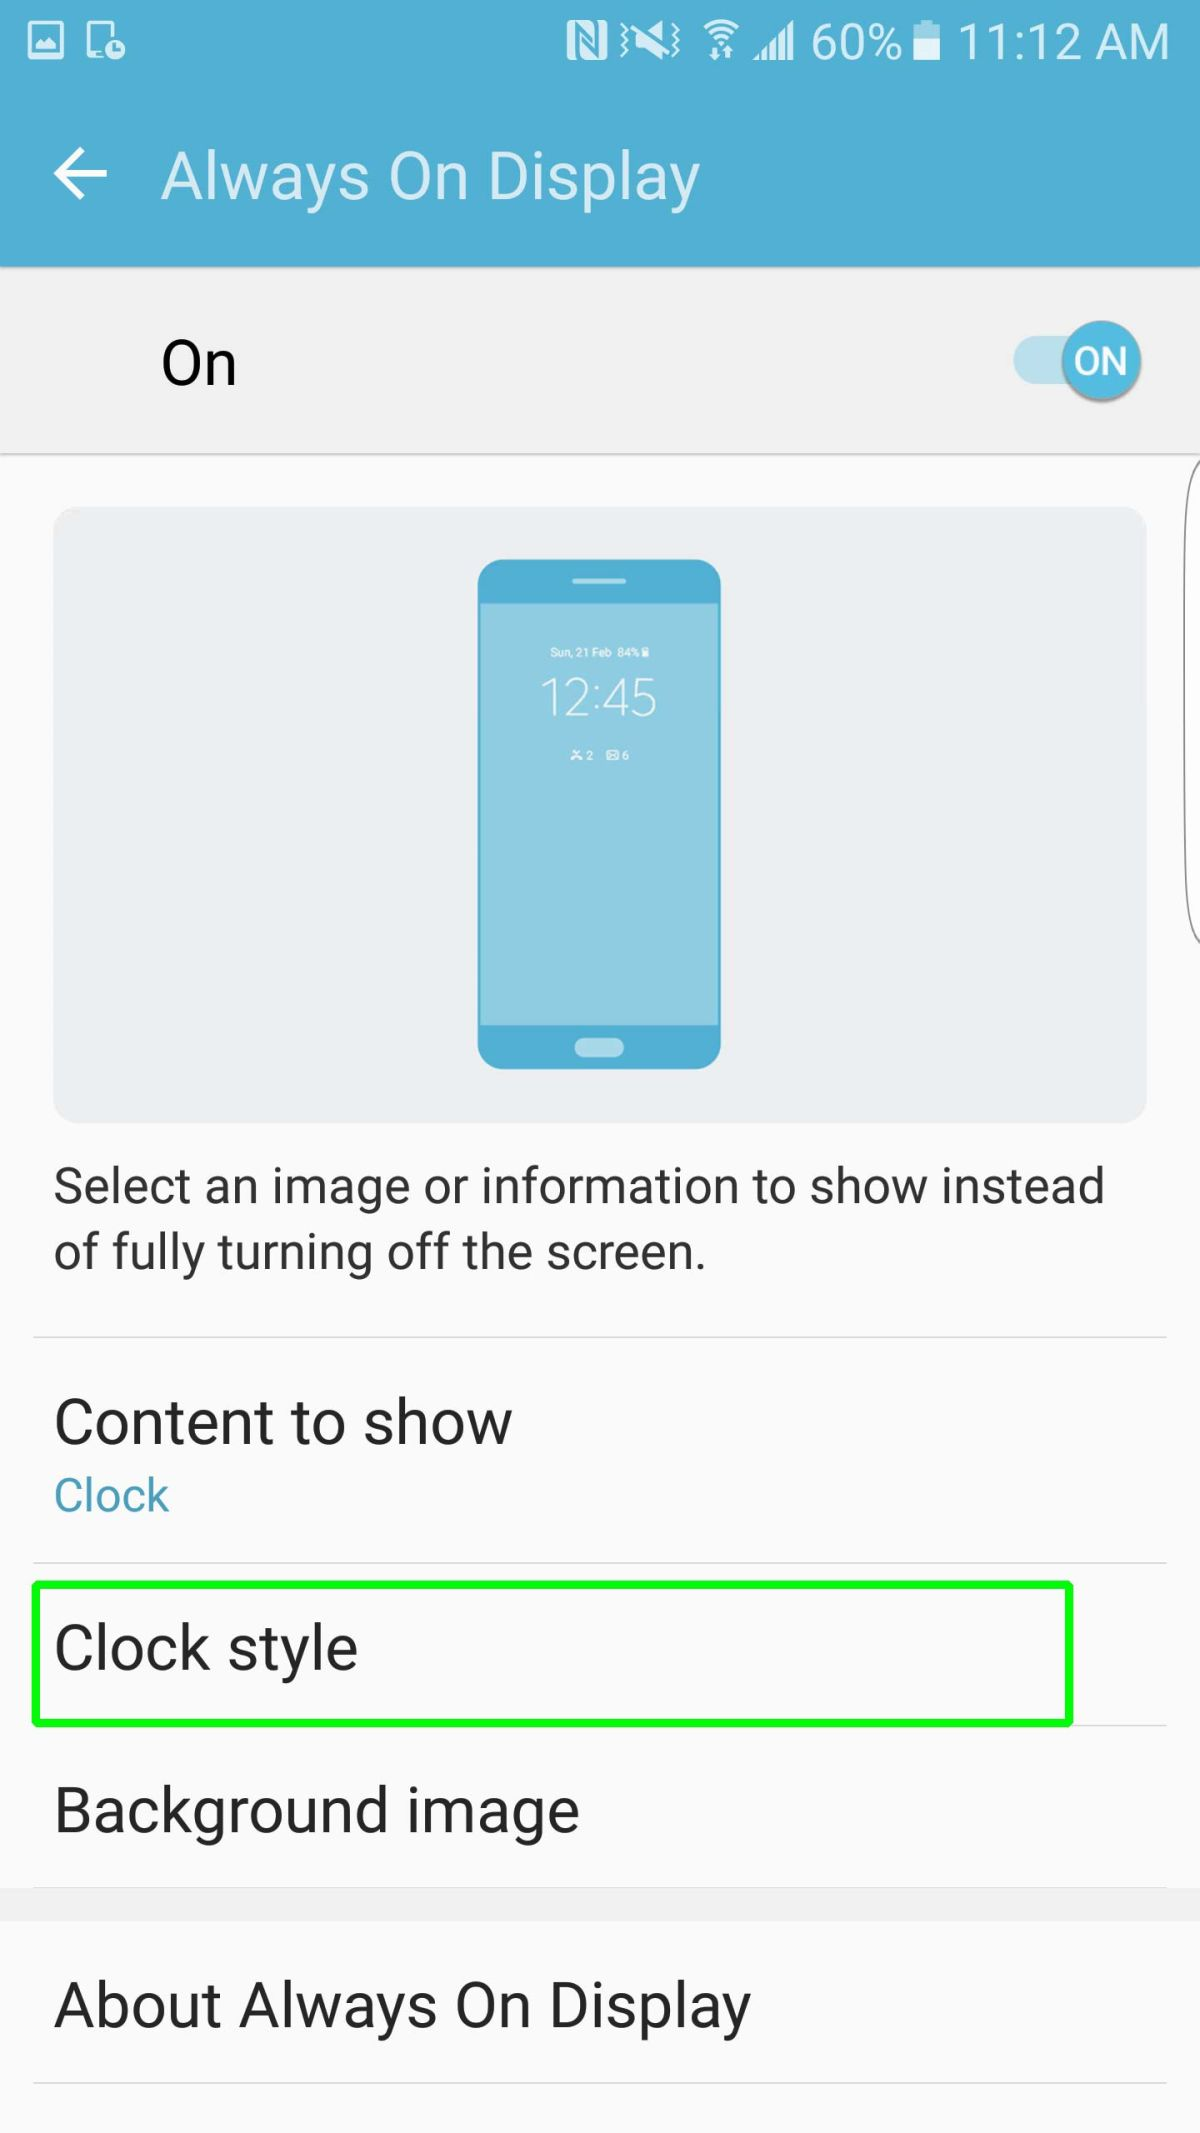 How to Set Up Always On Display on Your Galaxy S7 - Samsung